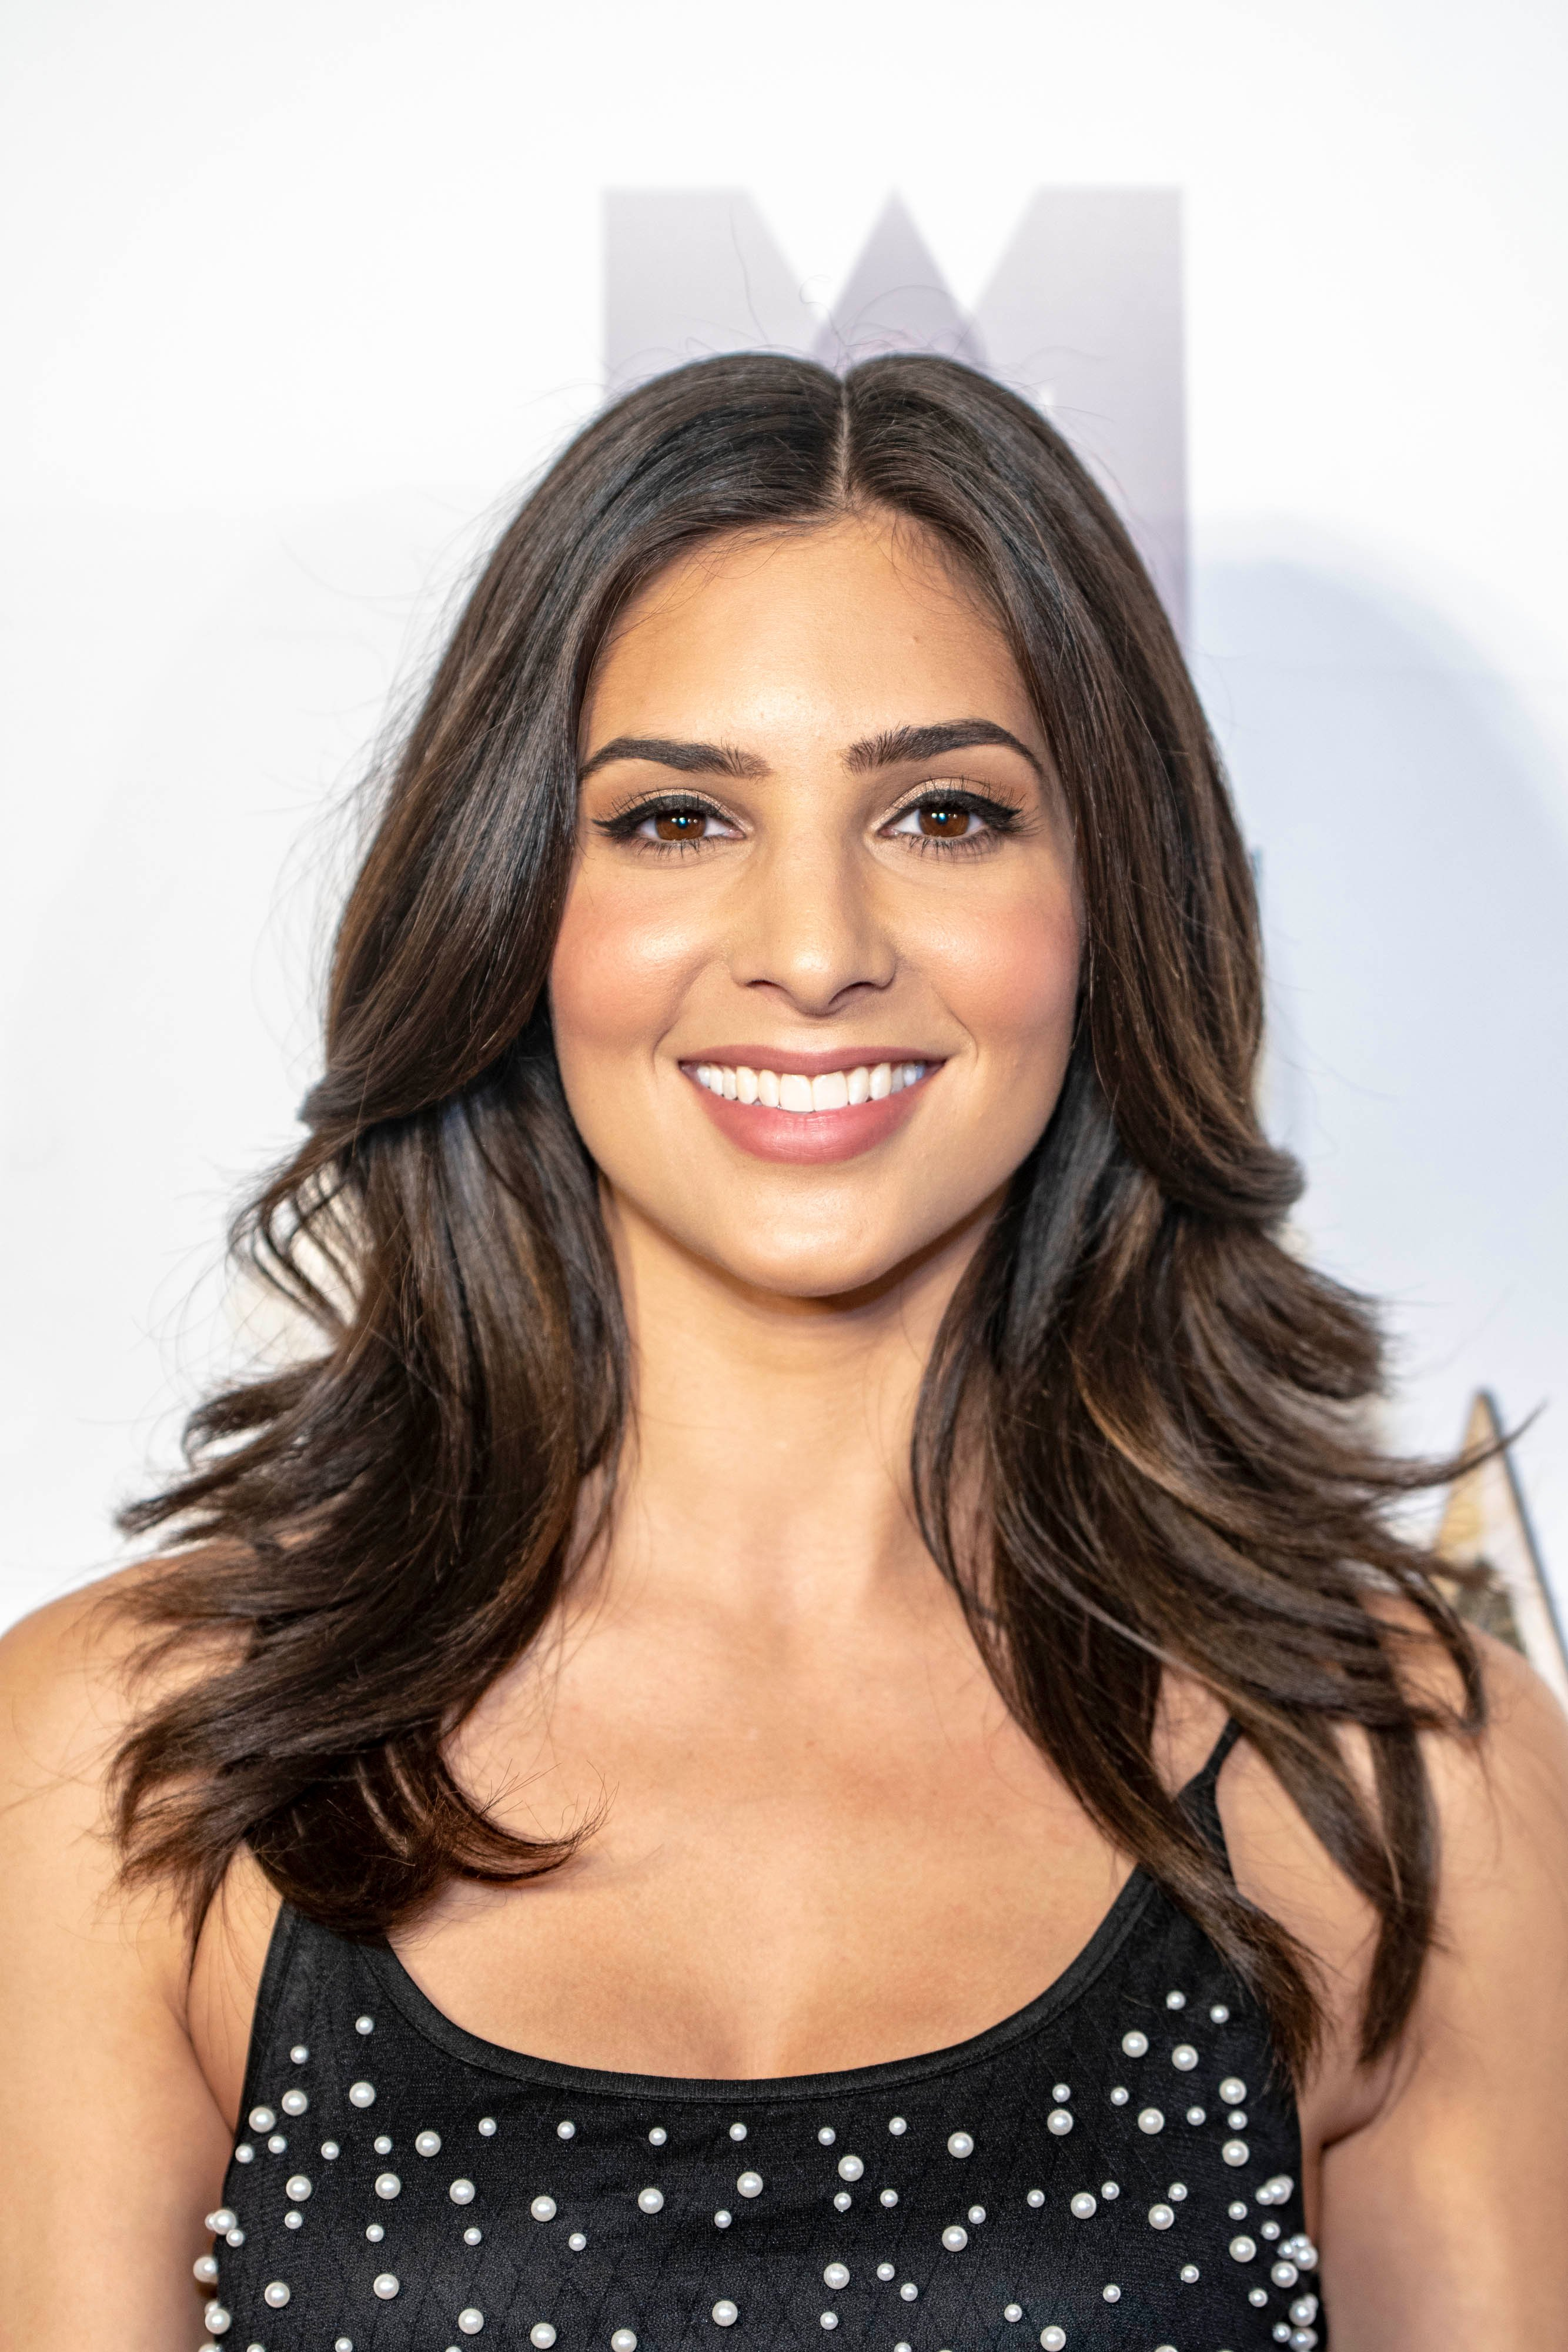 Actress Camila Banus attends 8th Annual World Choreography Awards at Saban Theater, on October 23, 2018 in Beverly Hills, California |